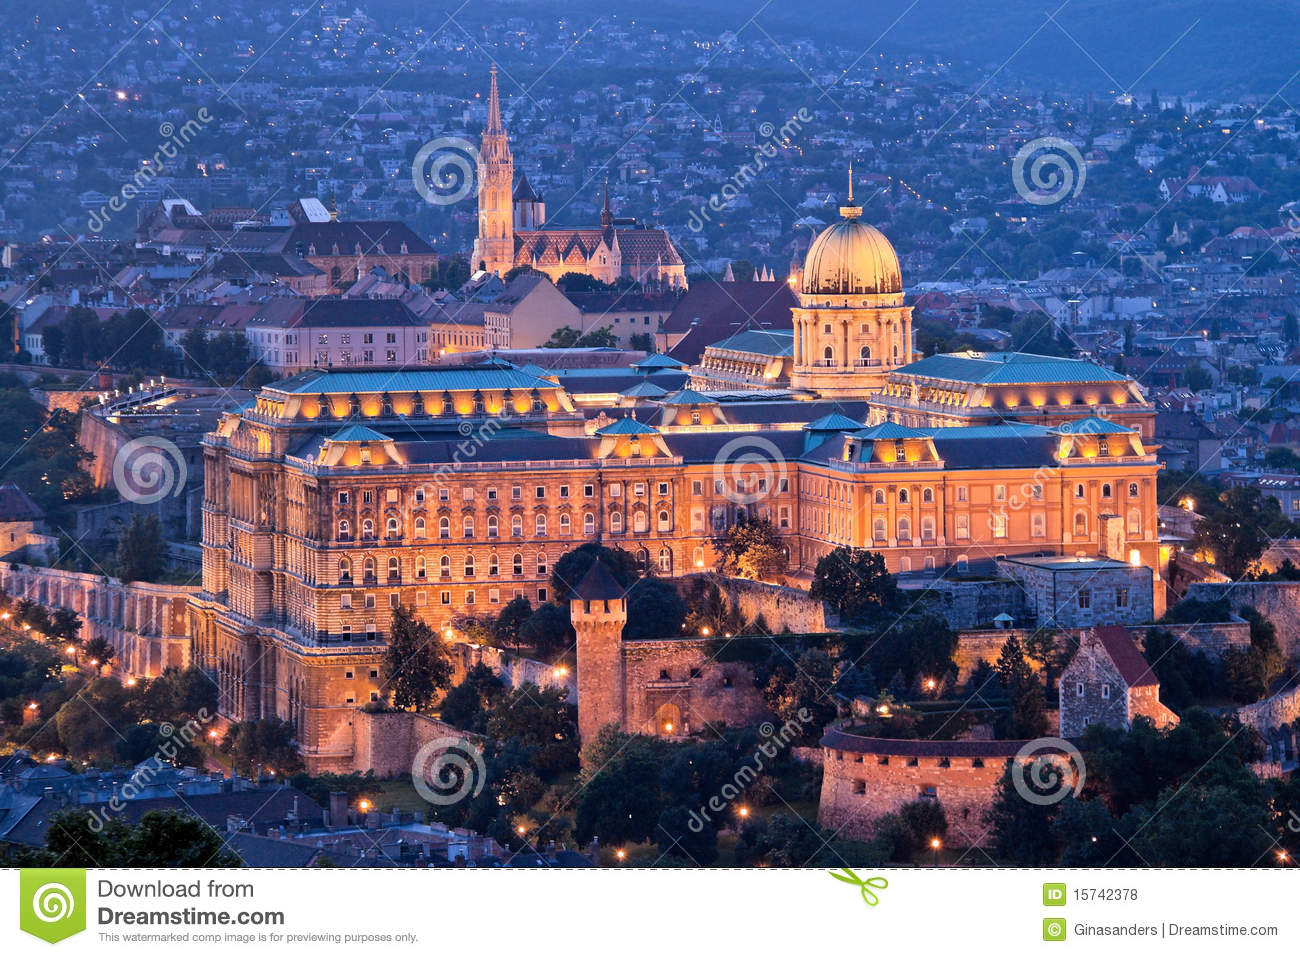 Hungary, Budapest, Castle Hill and Castle. City